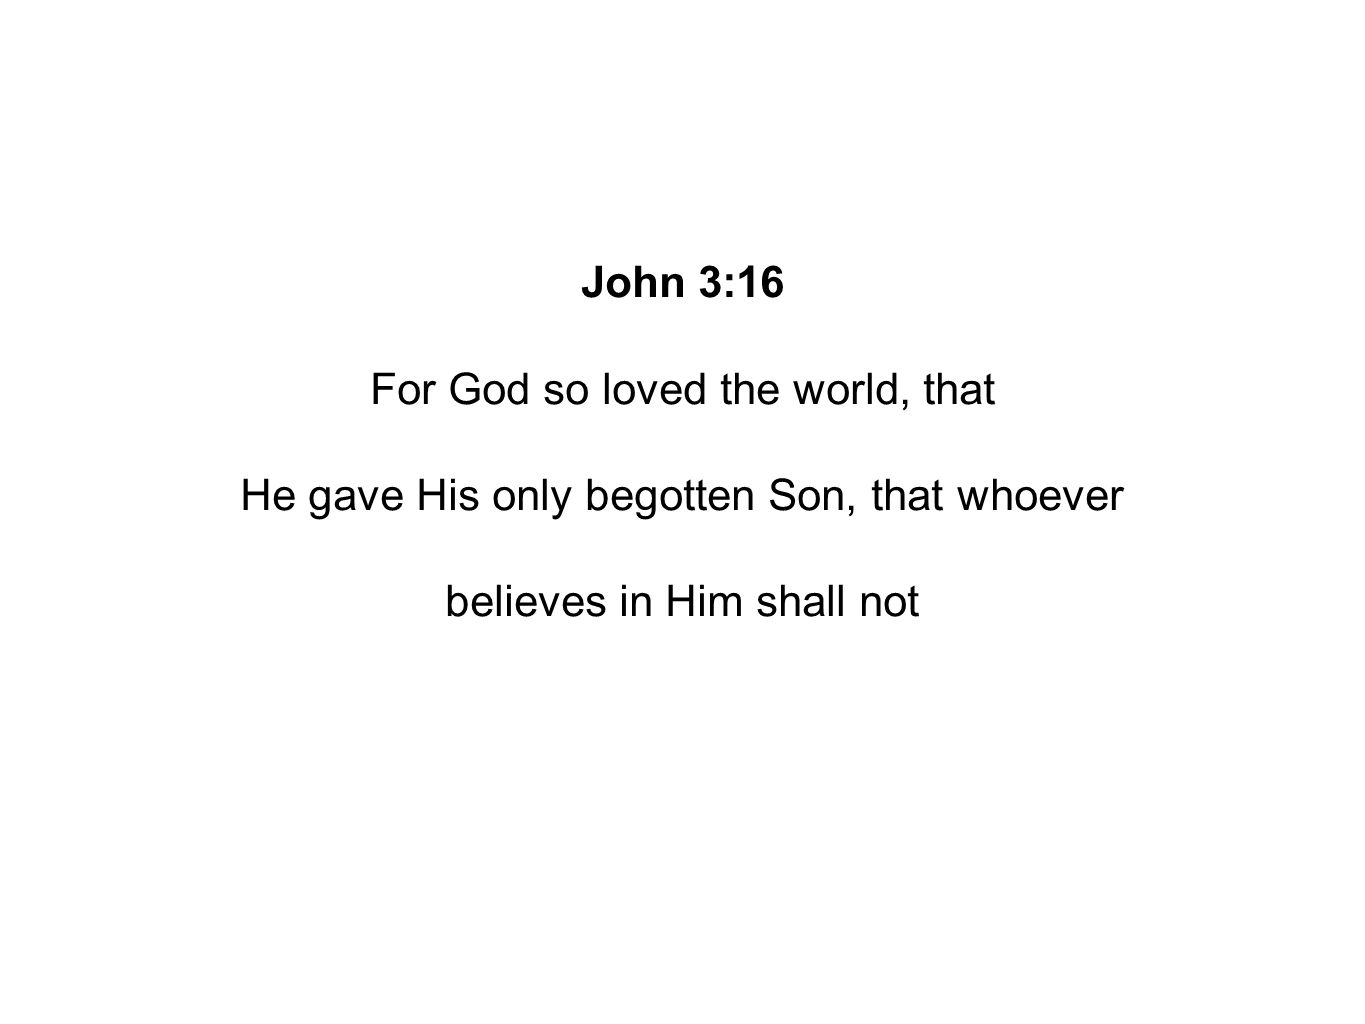 John 3:16 For God so loved the world, that He gave His only begotten Son, that whoever believes in Him shall not